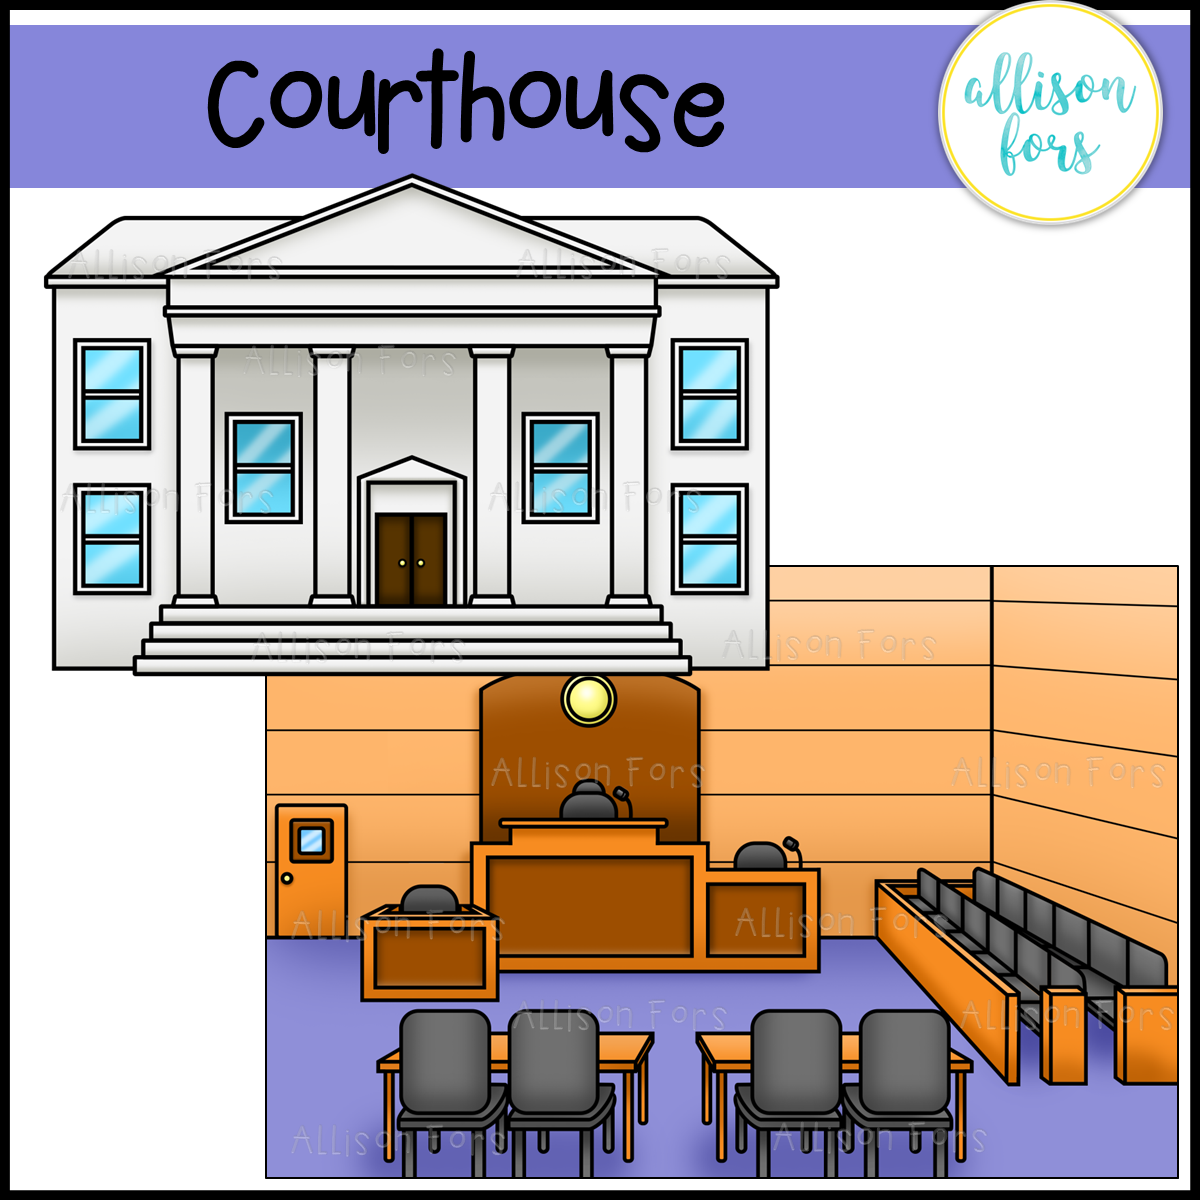 And clip art allison. Courthouse clipart courtroom